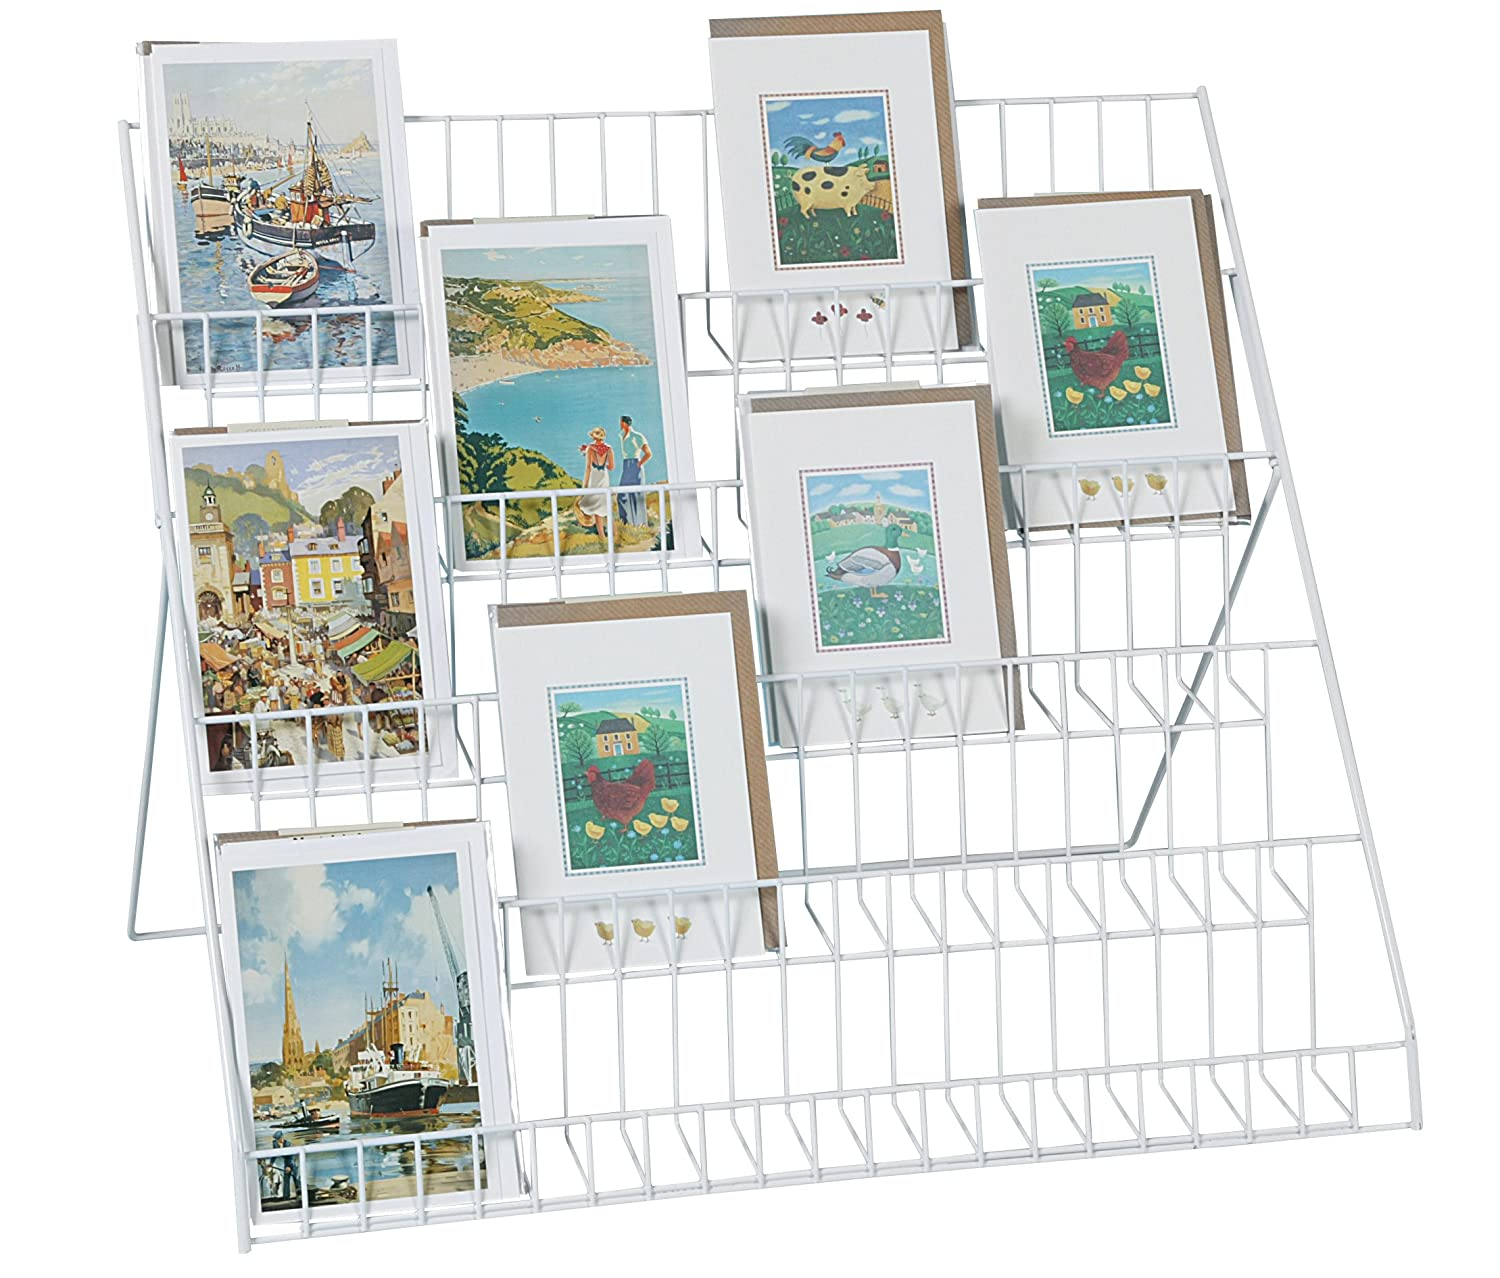 Stand store lightweight collapsible greeting card display stand stand store lightweight collapsible greeting card display stand white amazon office products kristyandbryce Choice Image